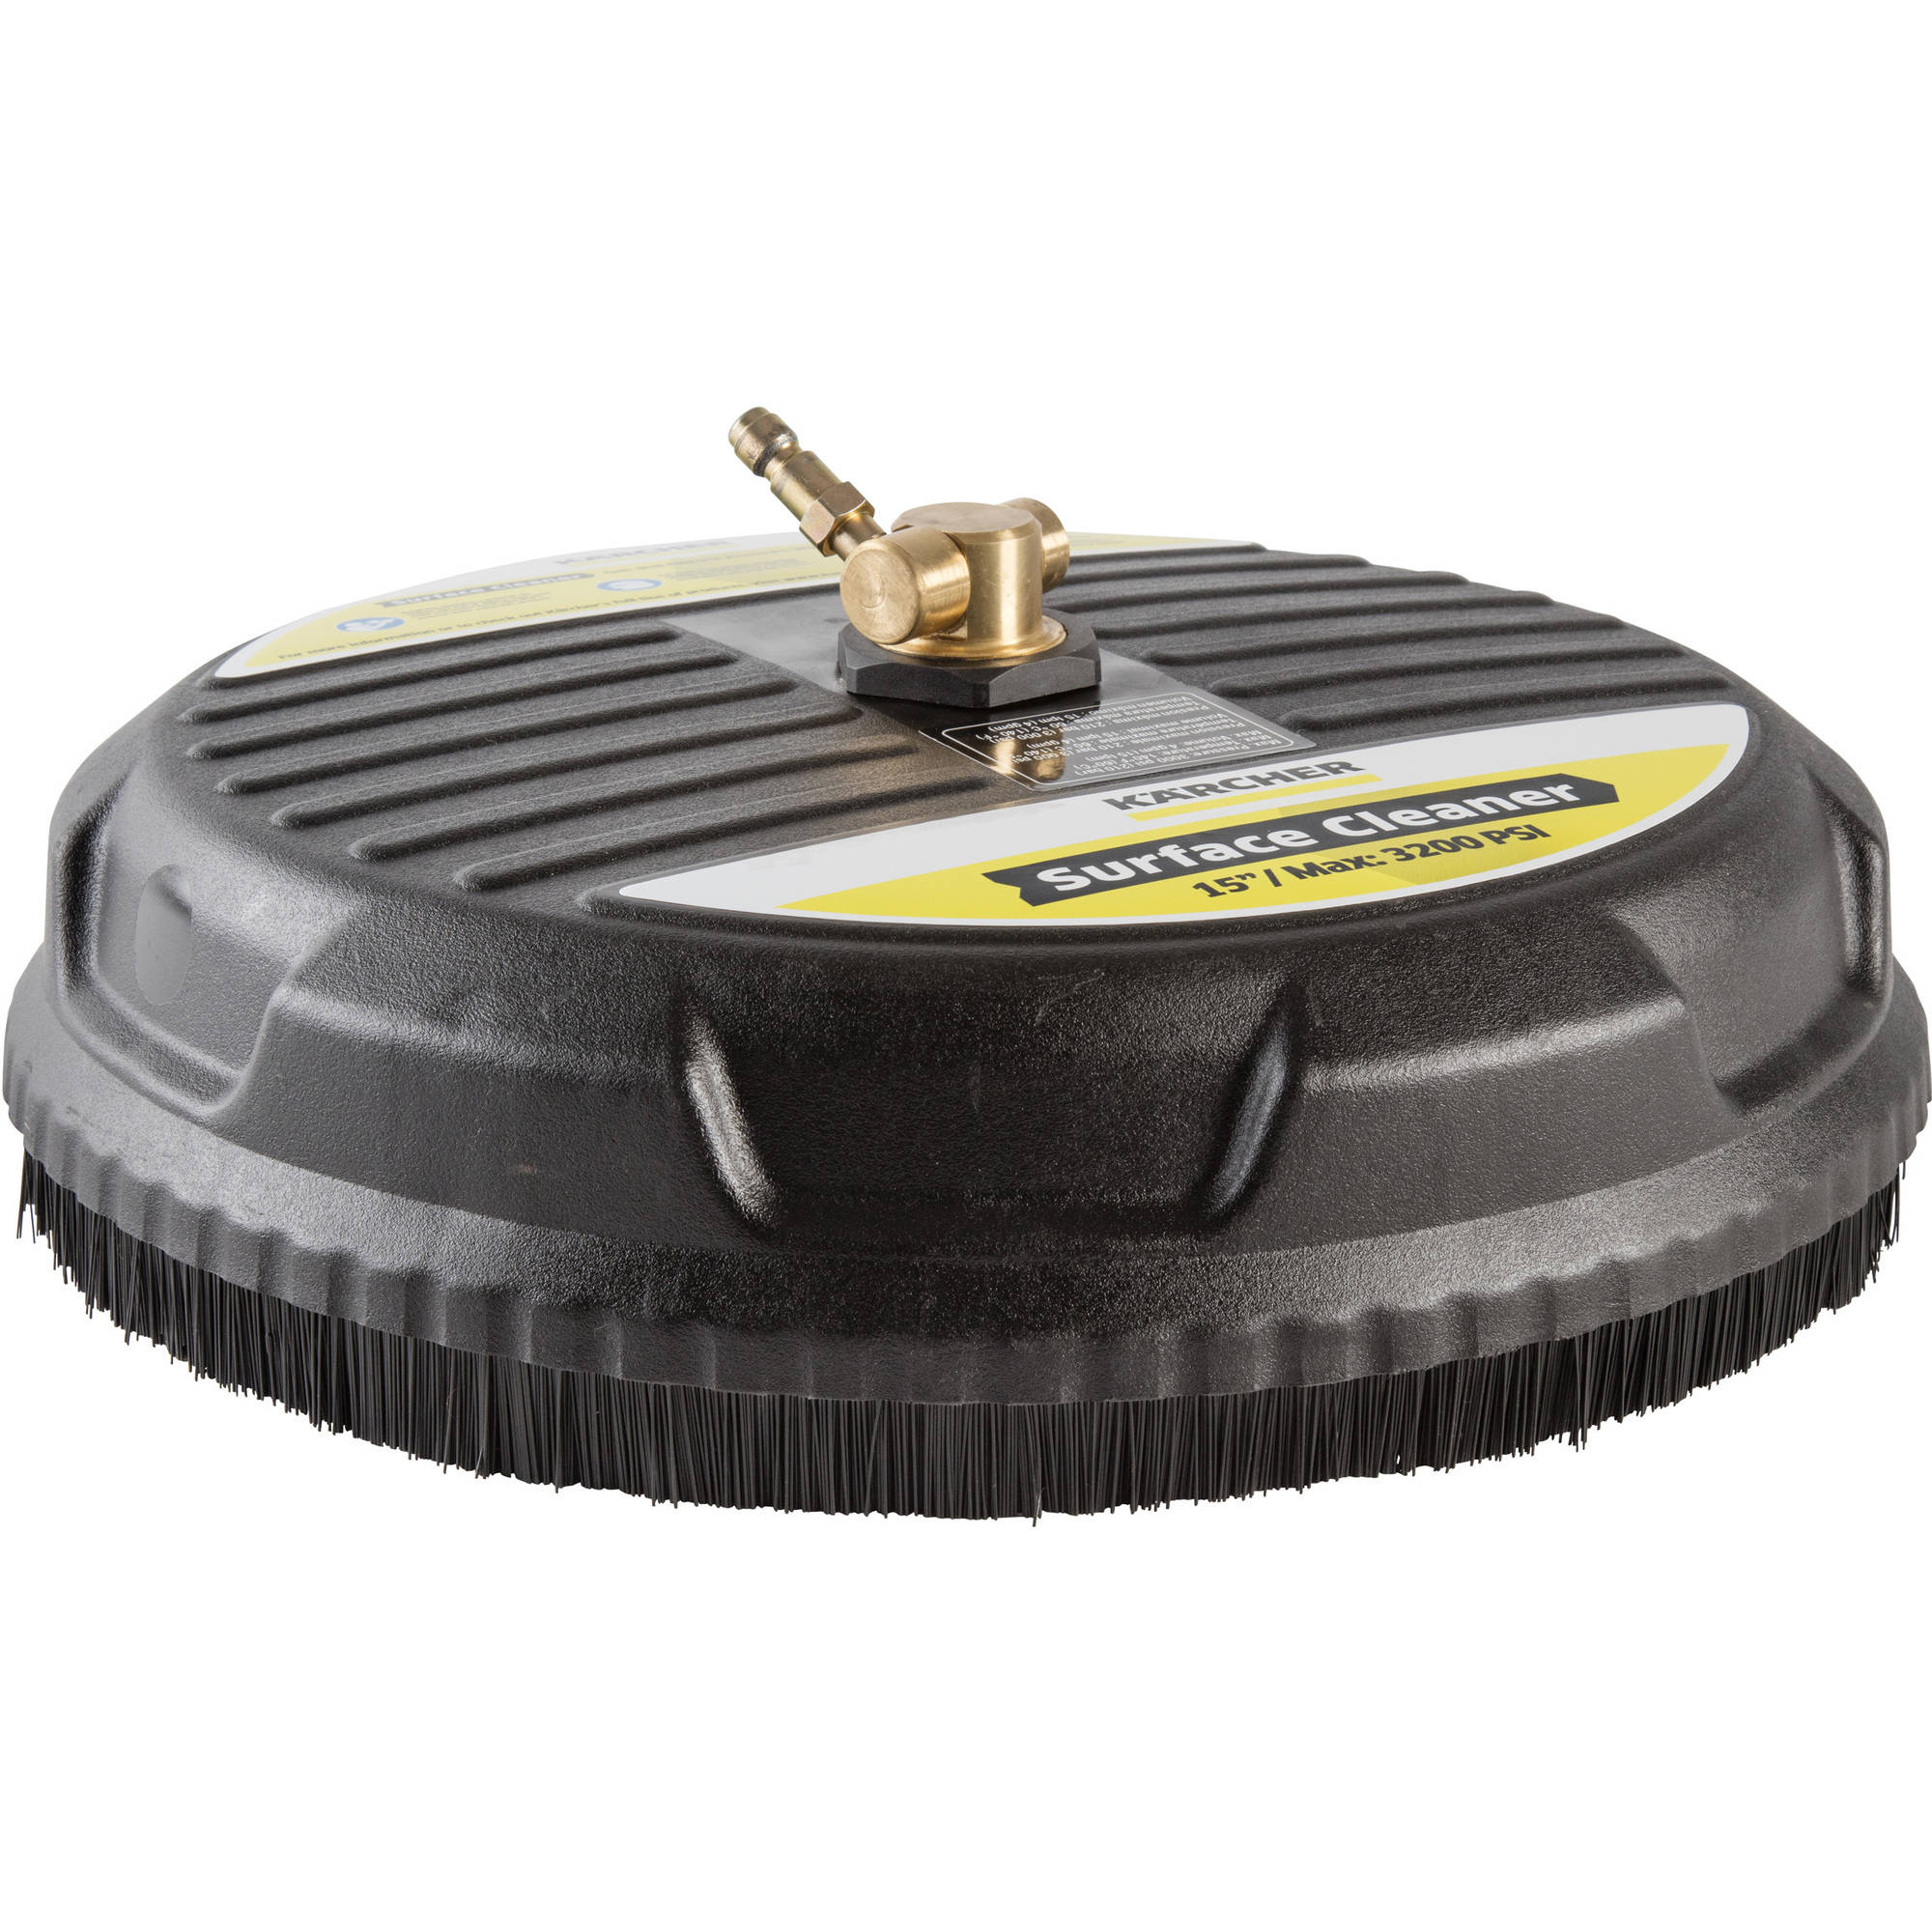 Karcher Universal Surface Cleaner for Gas Pressure Washers